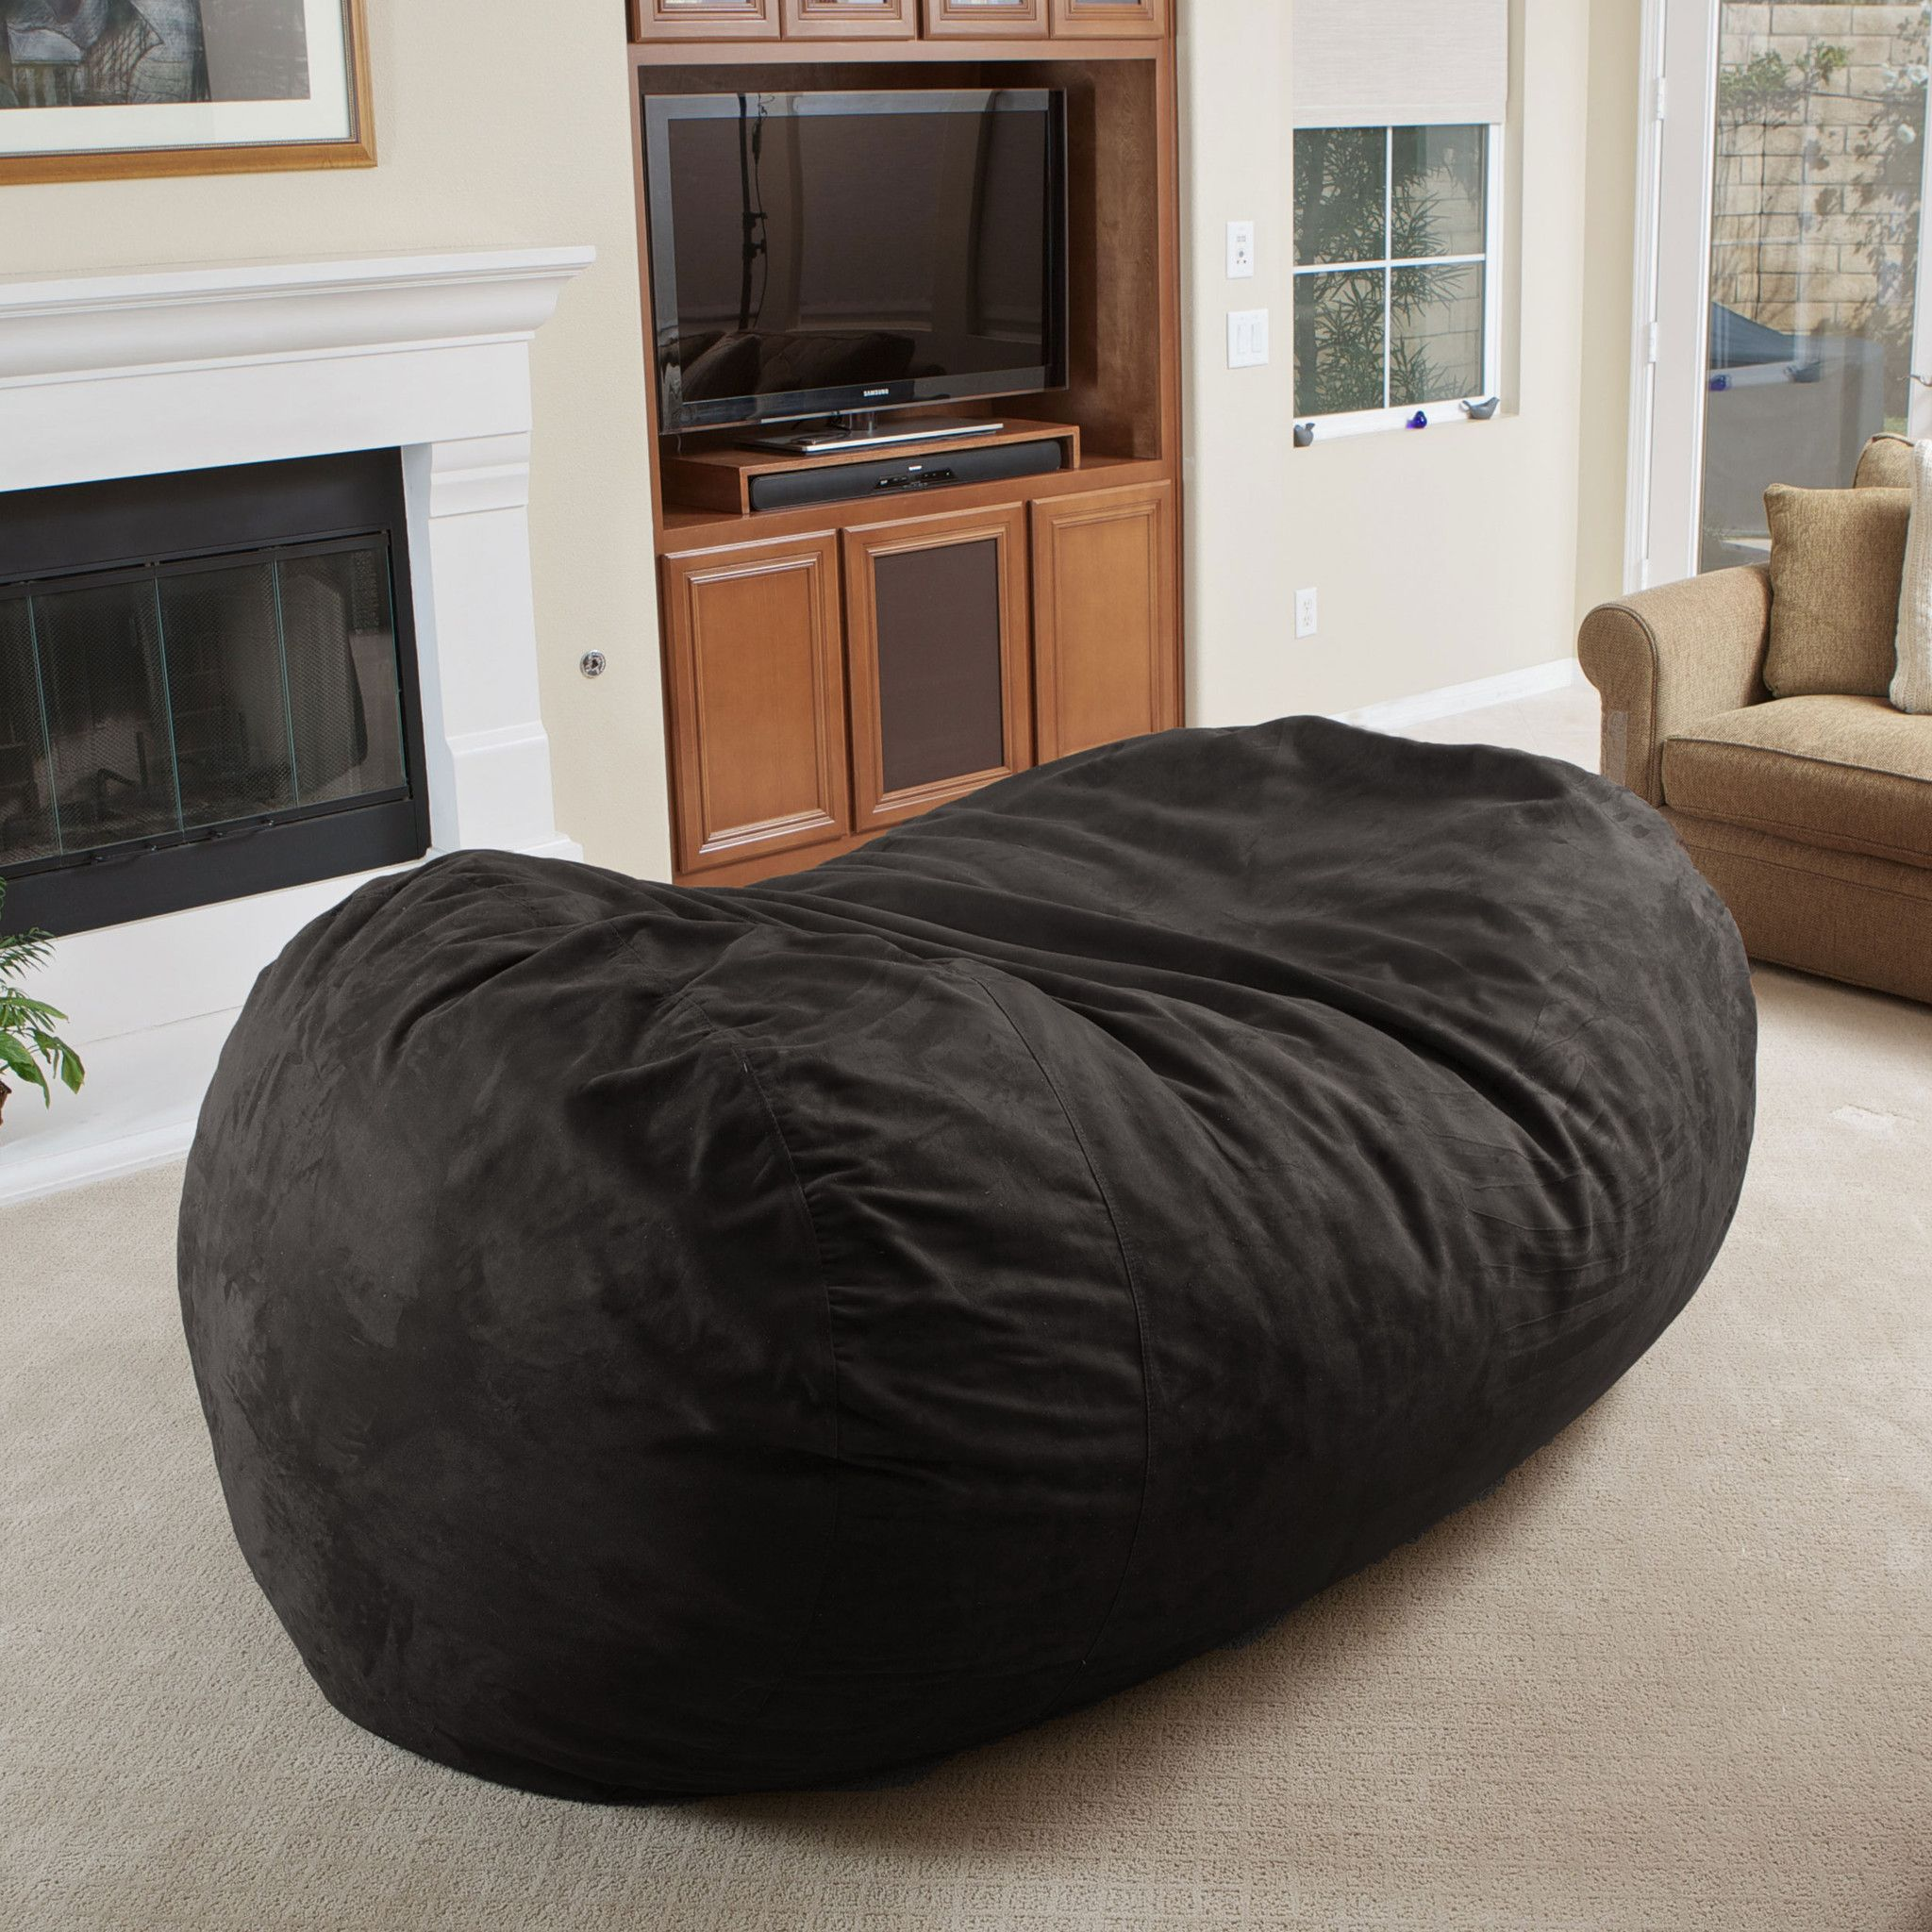 Astounding David Black Faux Suede 8 Foot Lounger Bean Bag Home Is Machost Co Dining Chair Design Ideas Machostcouk